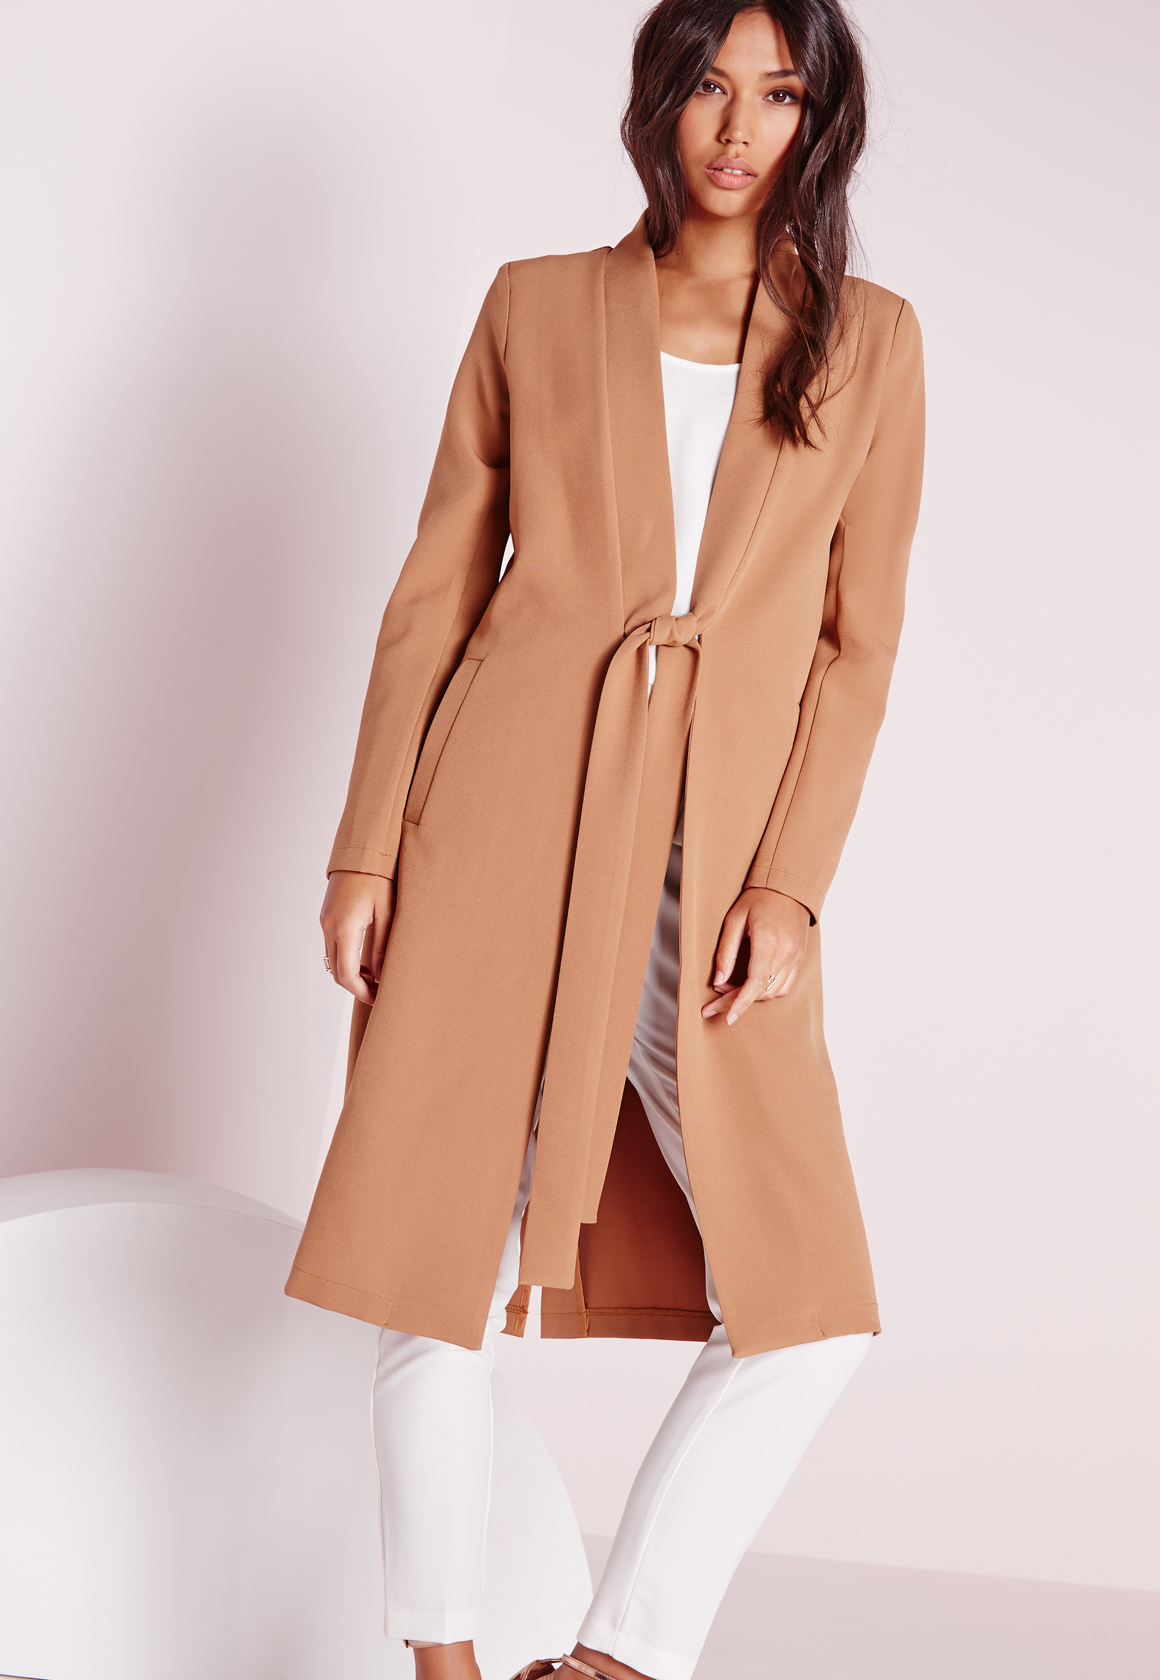 bc8d5a880 Missguided Tie Lapel Longline Blazer Camel in Natural - Lyst